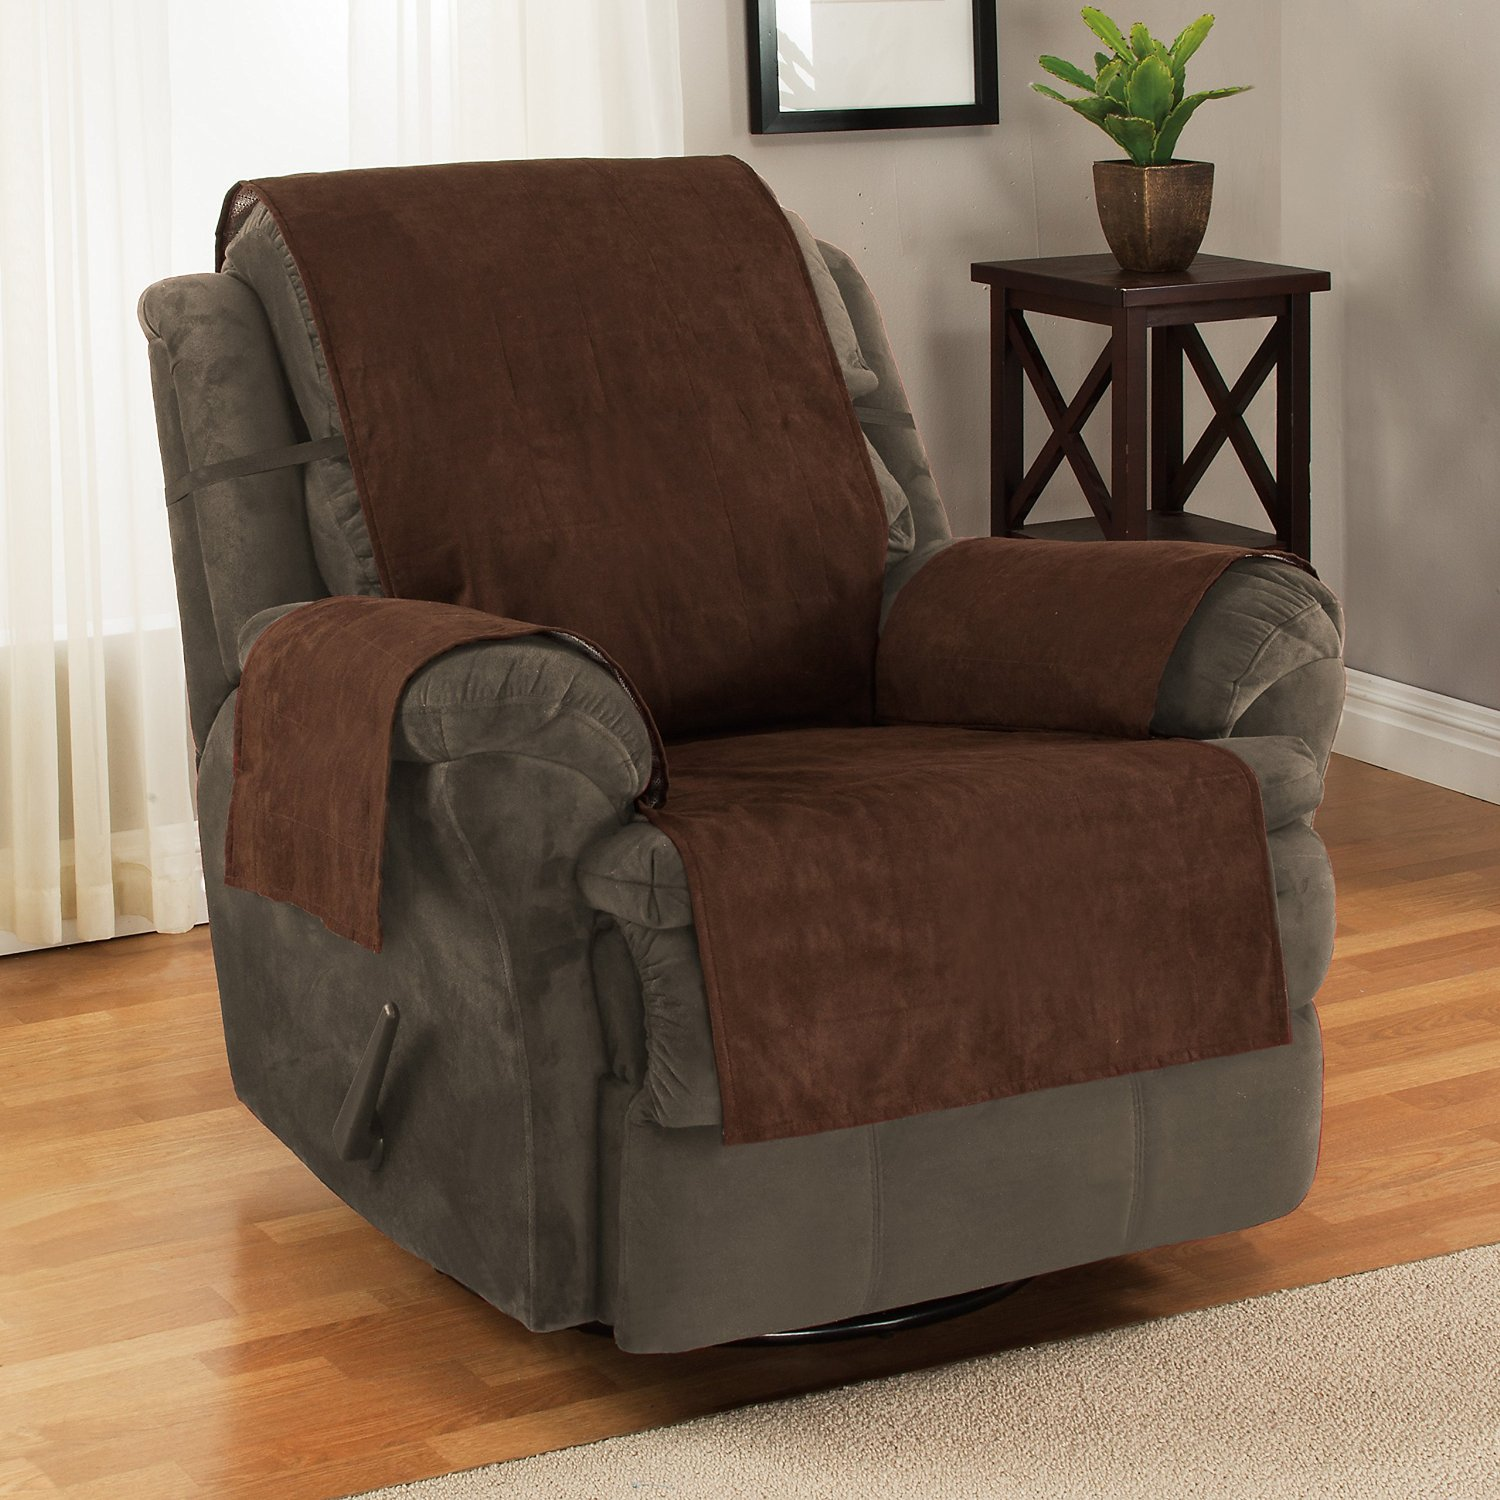 lazy boy recliner covers 4 Best Lazy Boy Recliner Slipcover   LazyboyReclinersOnline.com lazy boy recliner covers